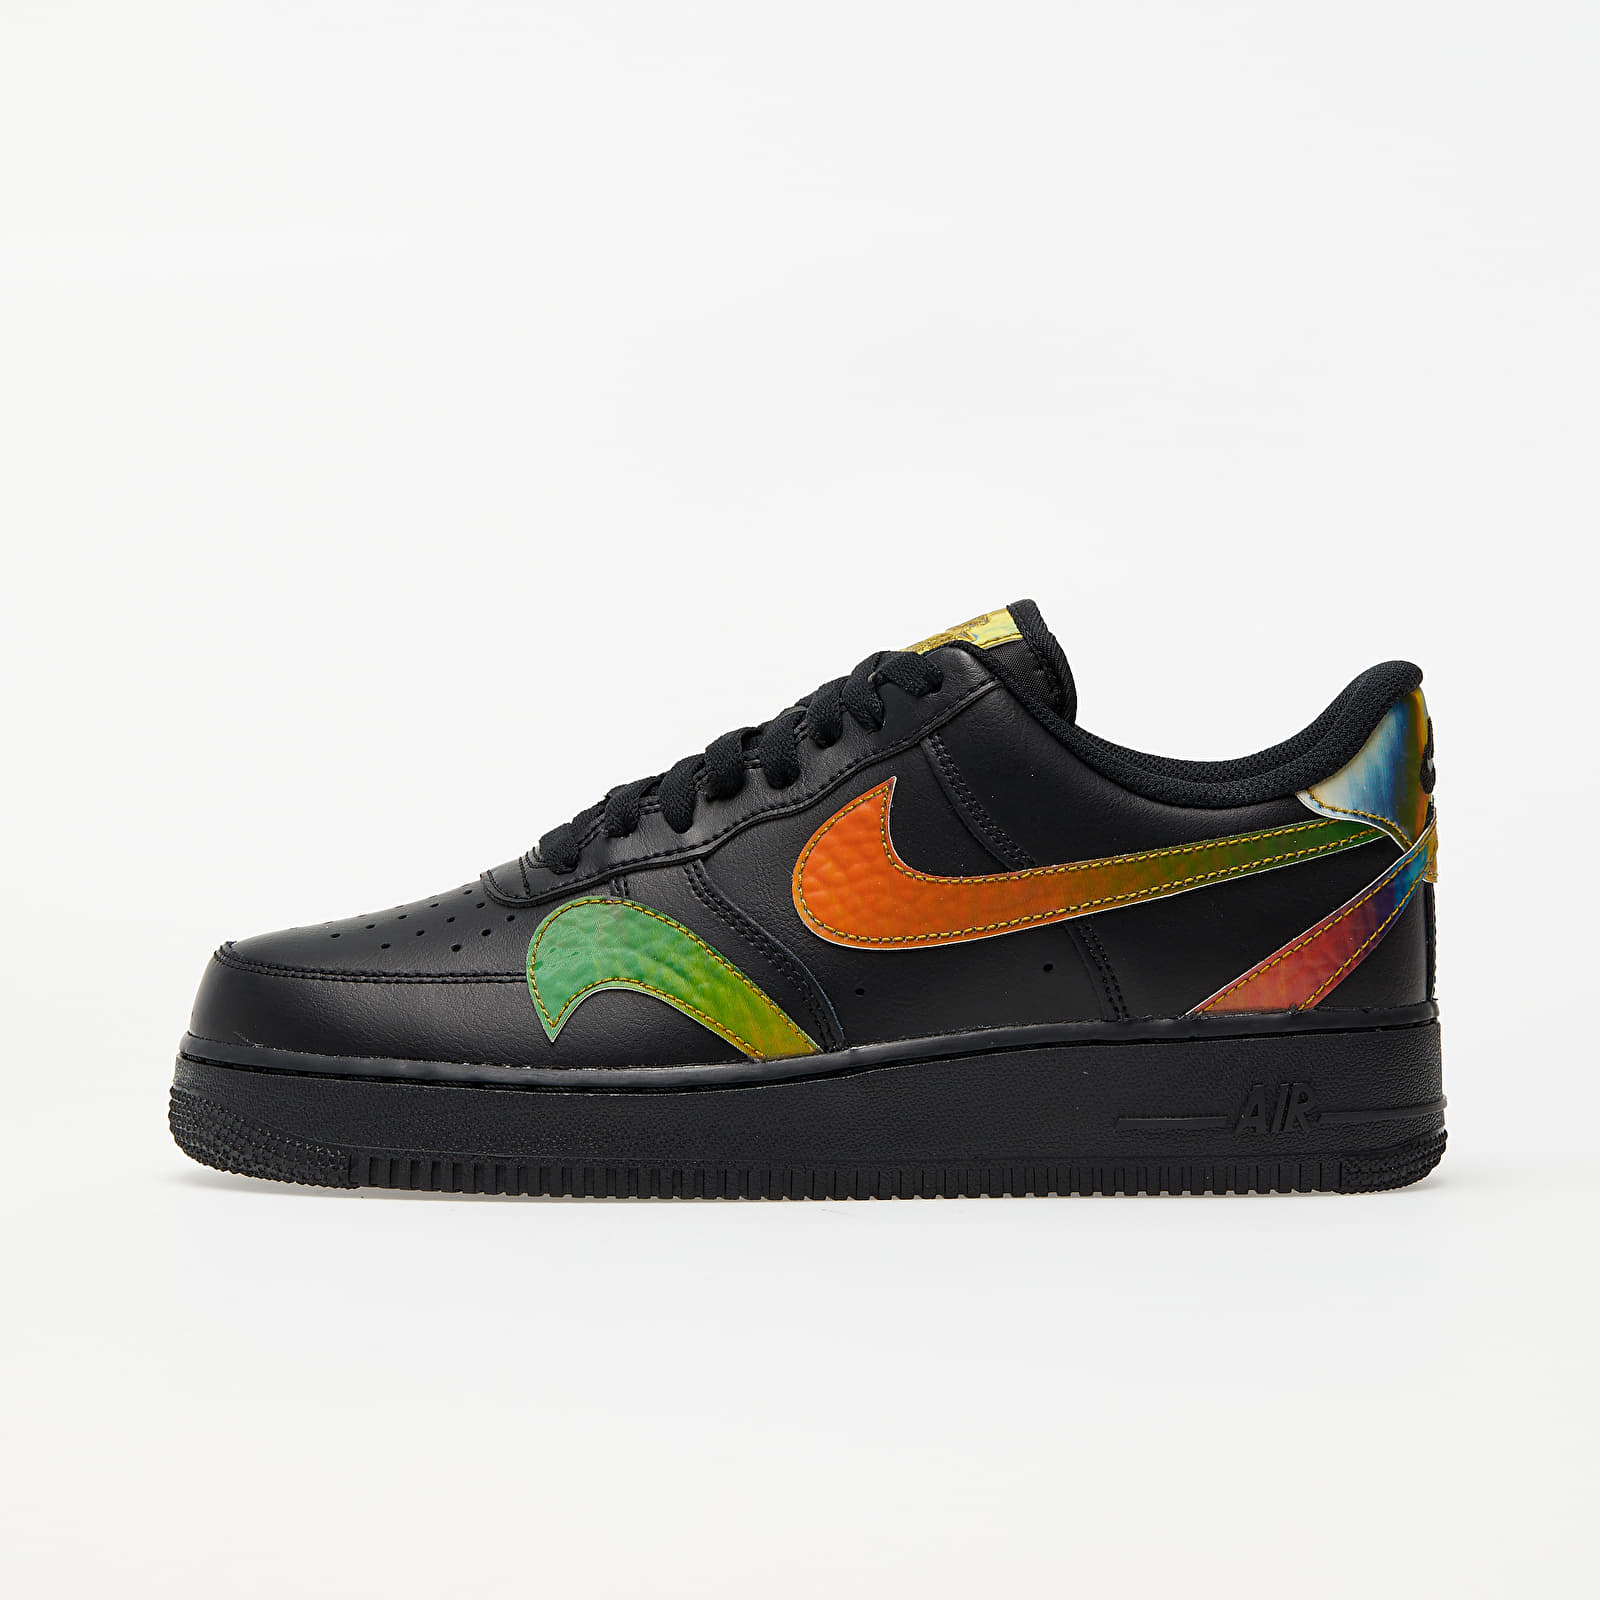 Nike Air Force 1 '07 LV8 Black/ Multi-Color-Black EUR 40